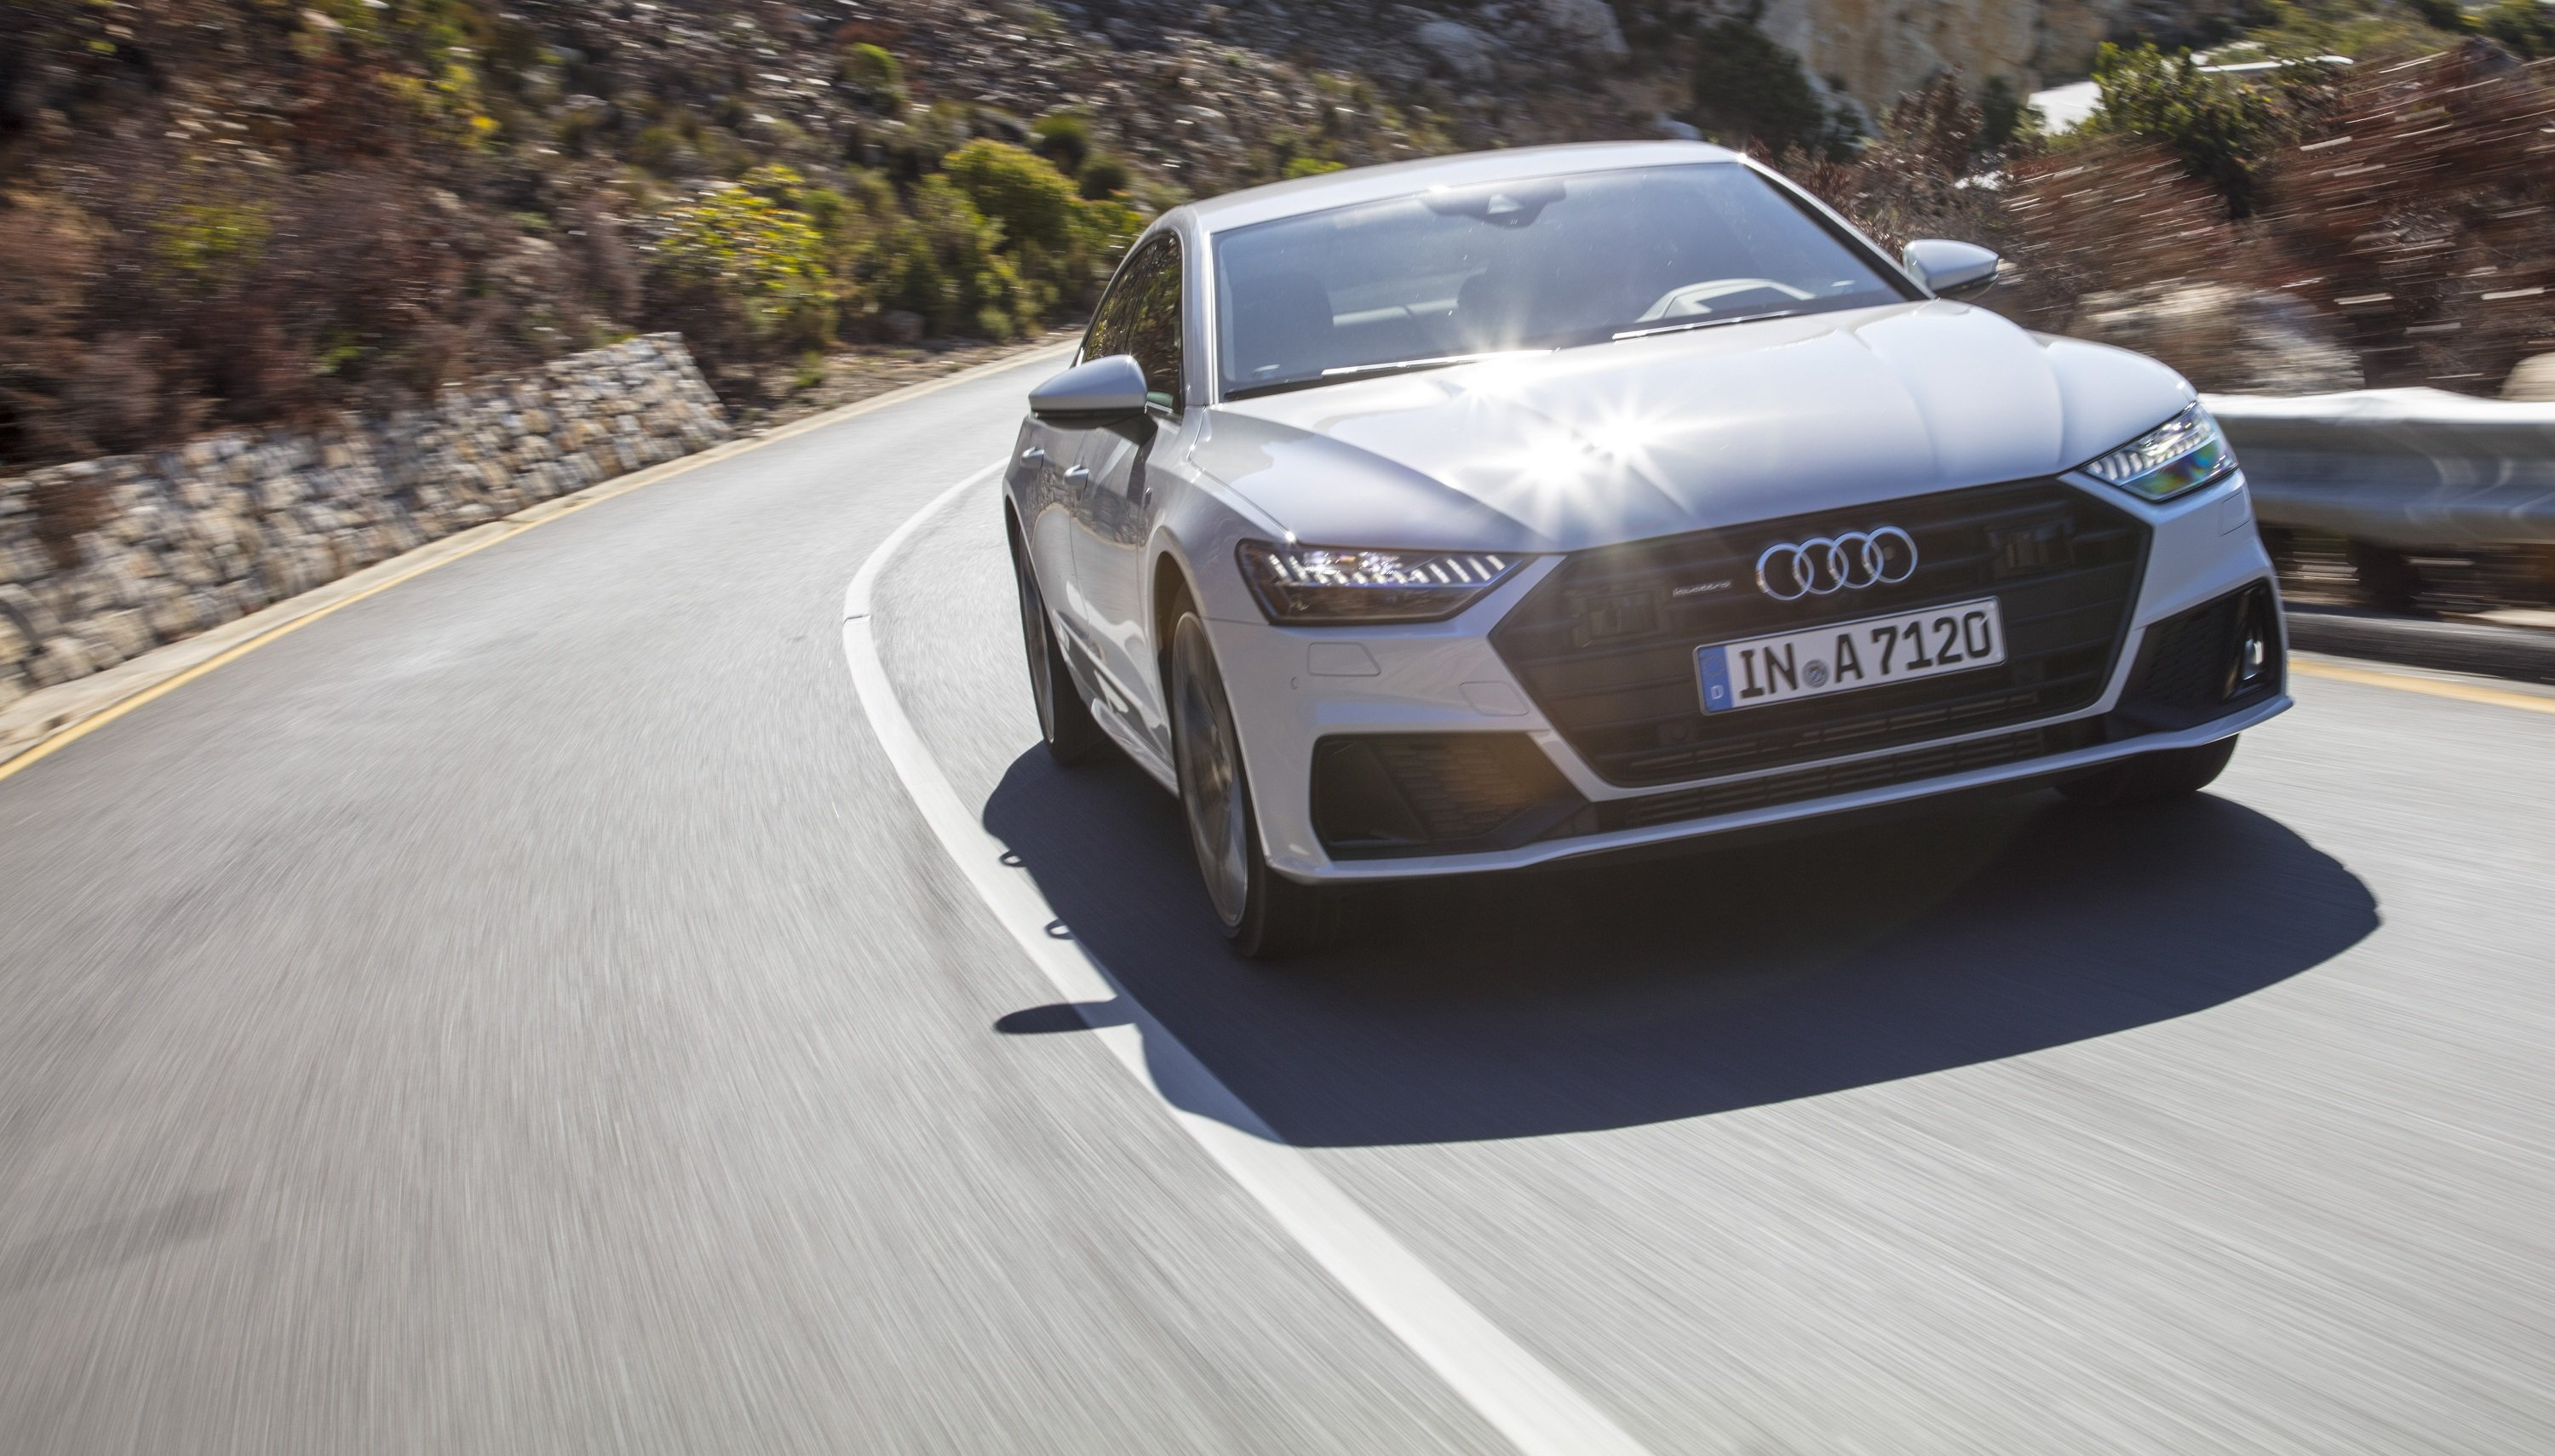 Audi A7 Lease Deals Offers Cicerony